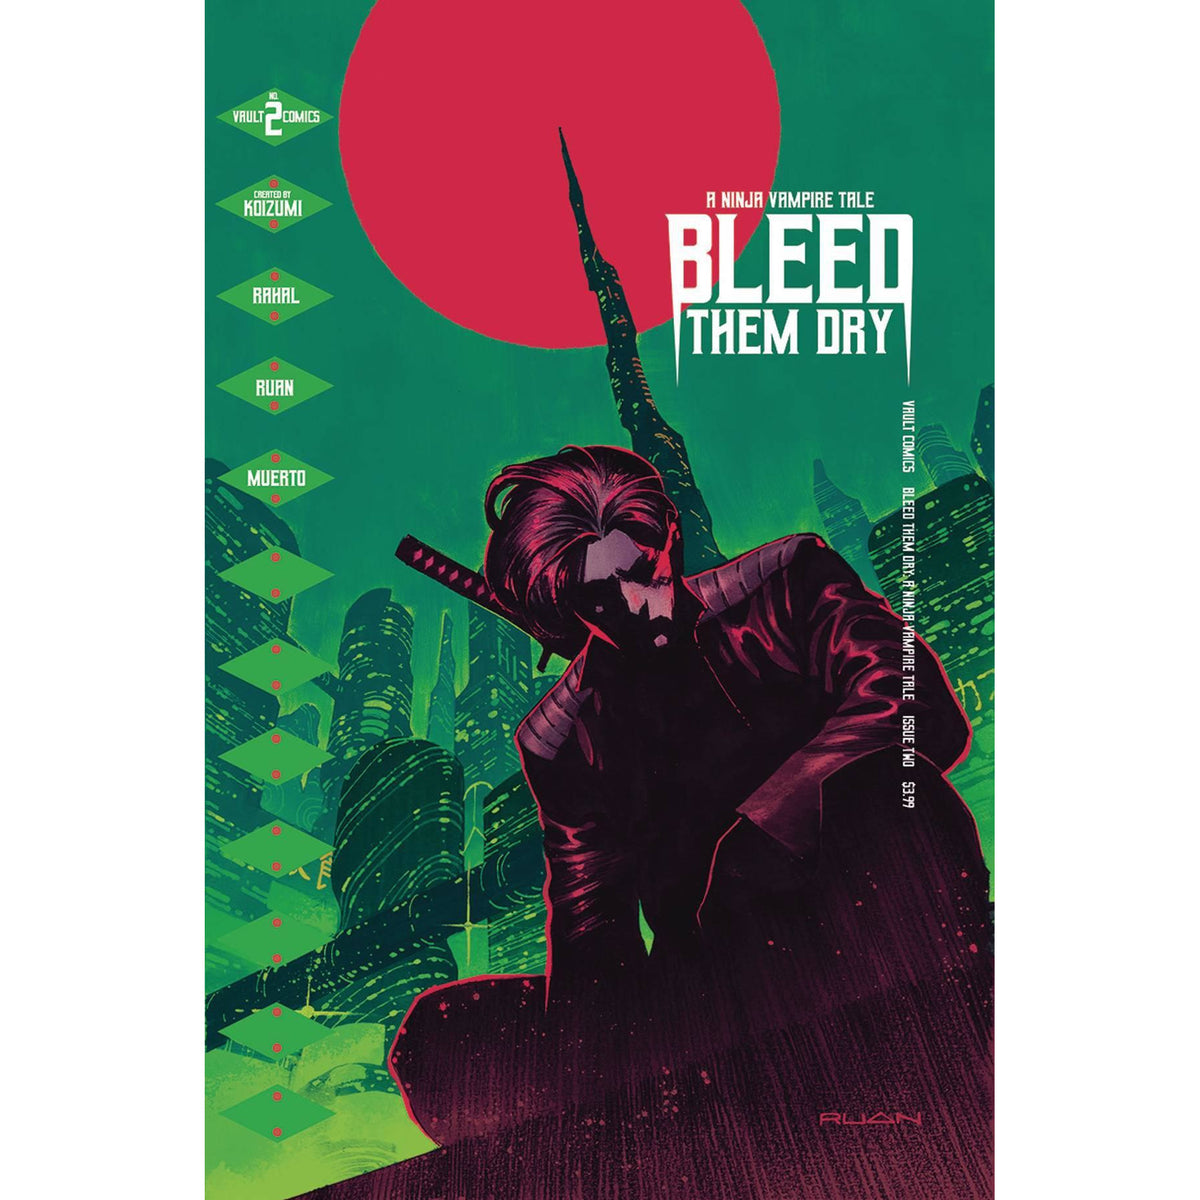 BLEED THEM DRY #2 - RUAN COVER A